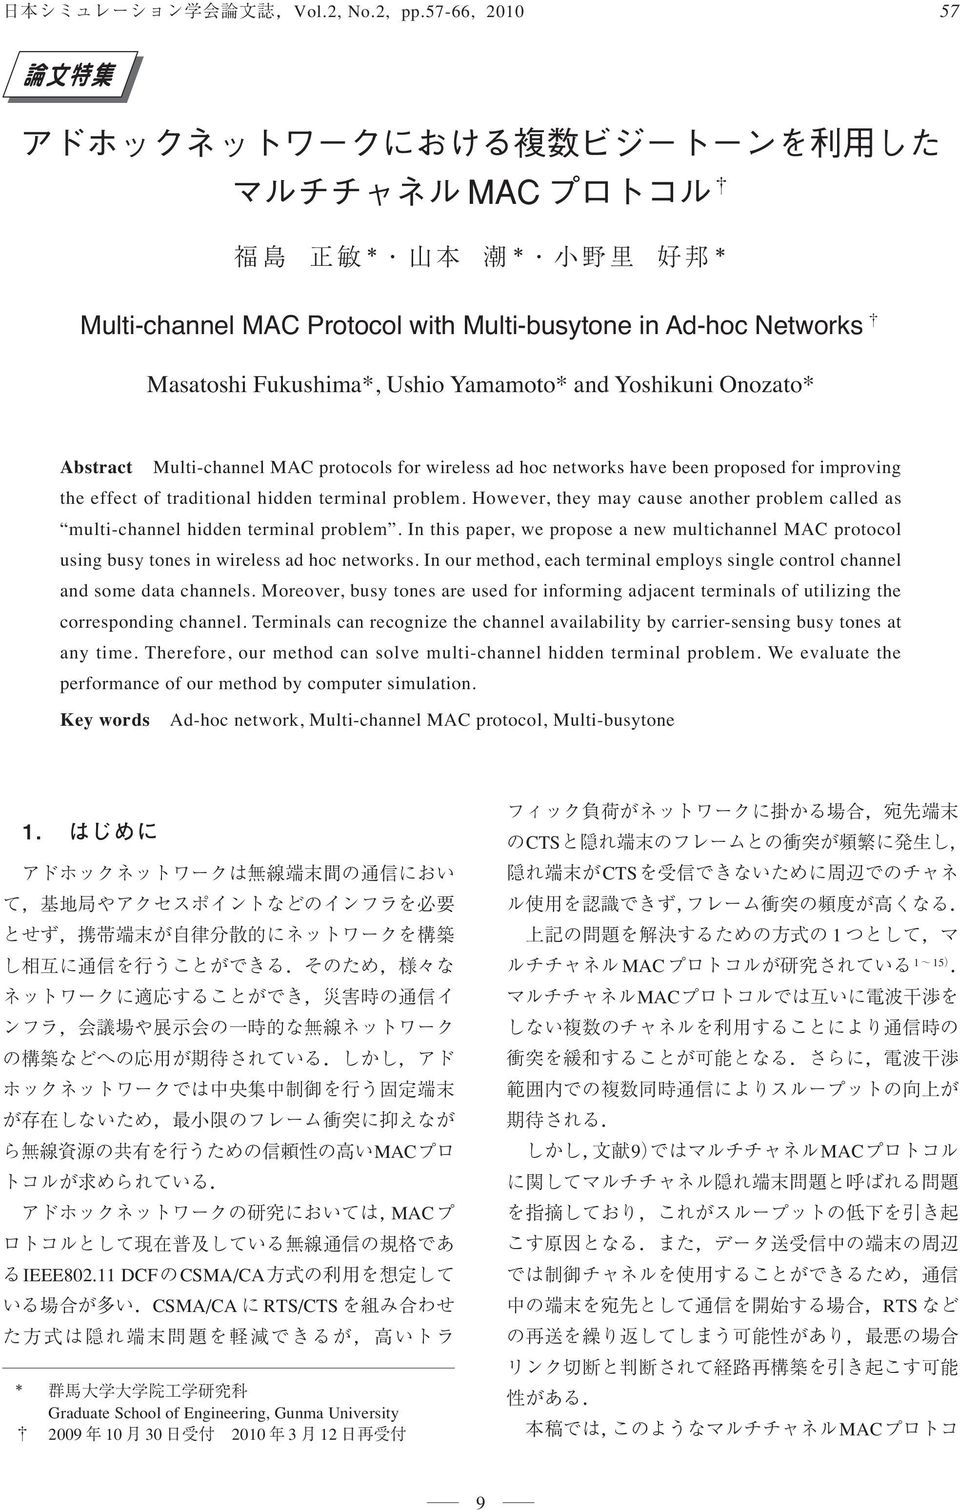 In this paper, we propose a new multichannel MAC protocol using busy tones in wireless ad hoc networks. In our method, each terminal employs single control channel and some data channels.